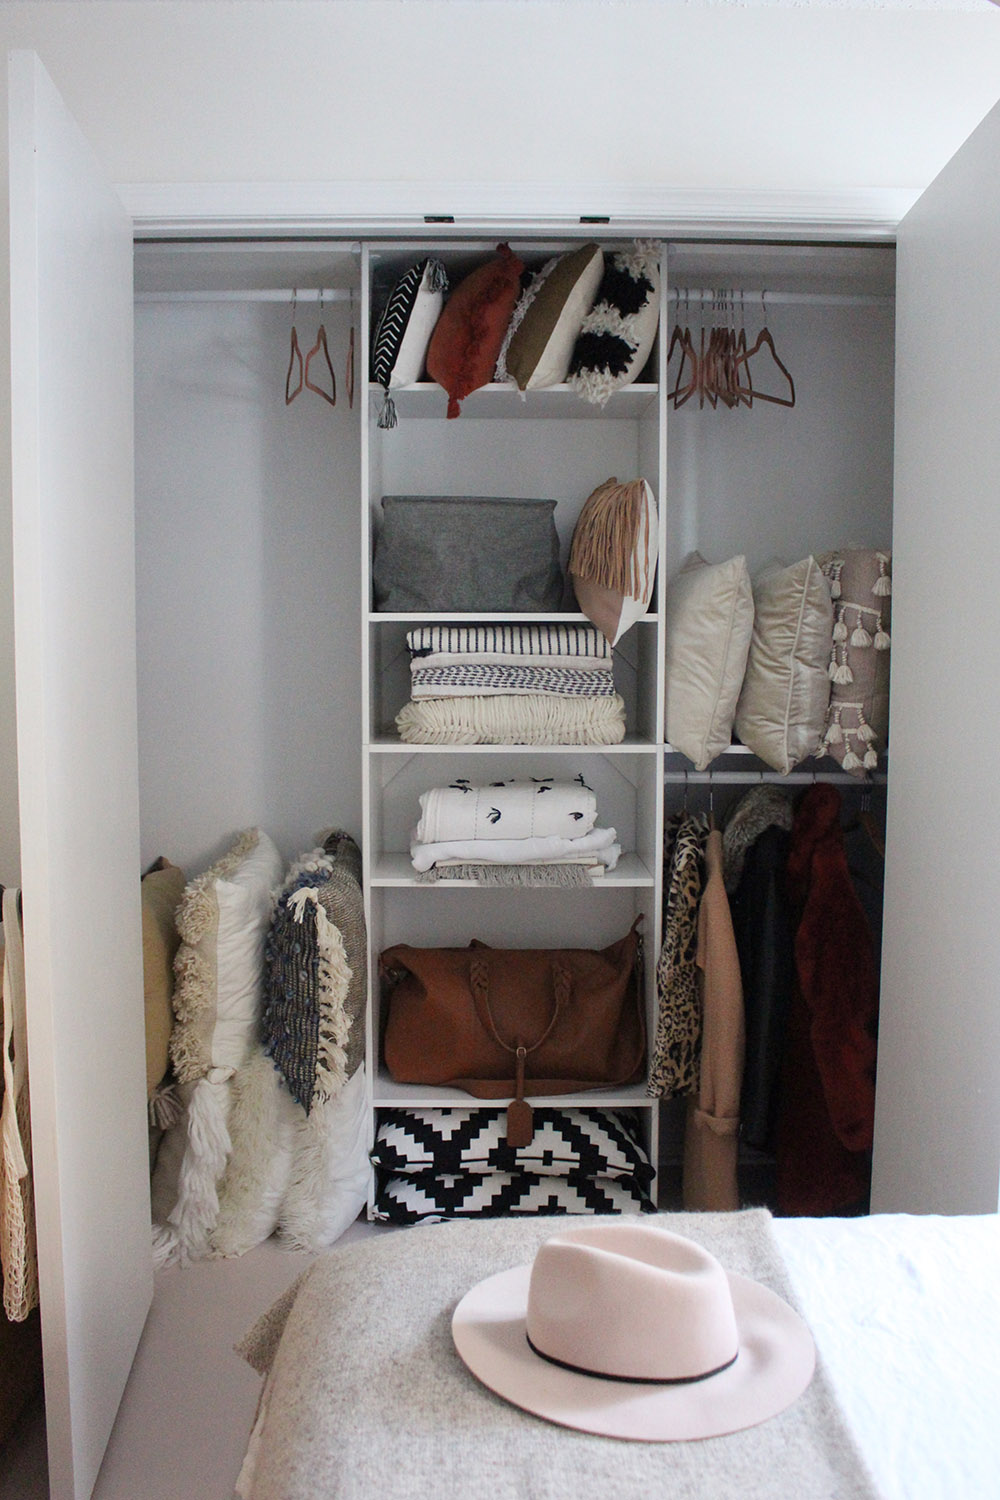 An organized closet with wooden shelving.